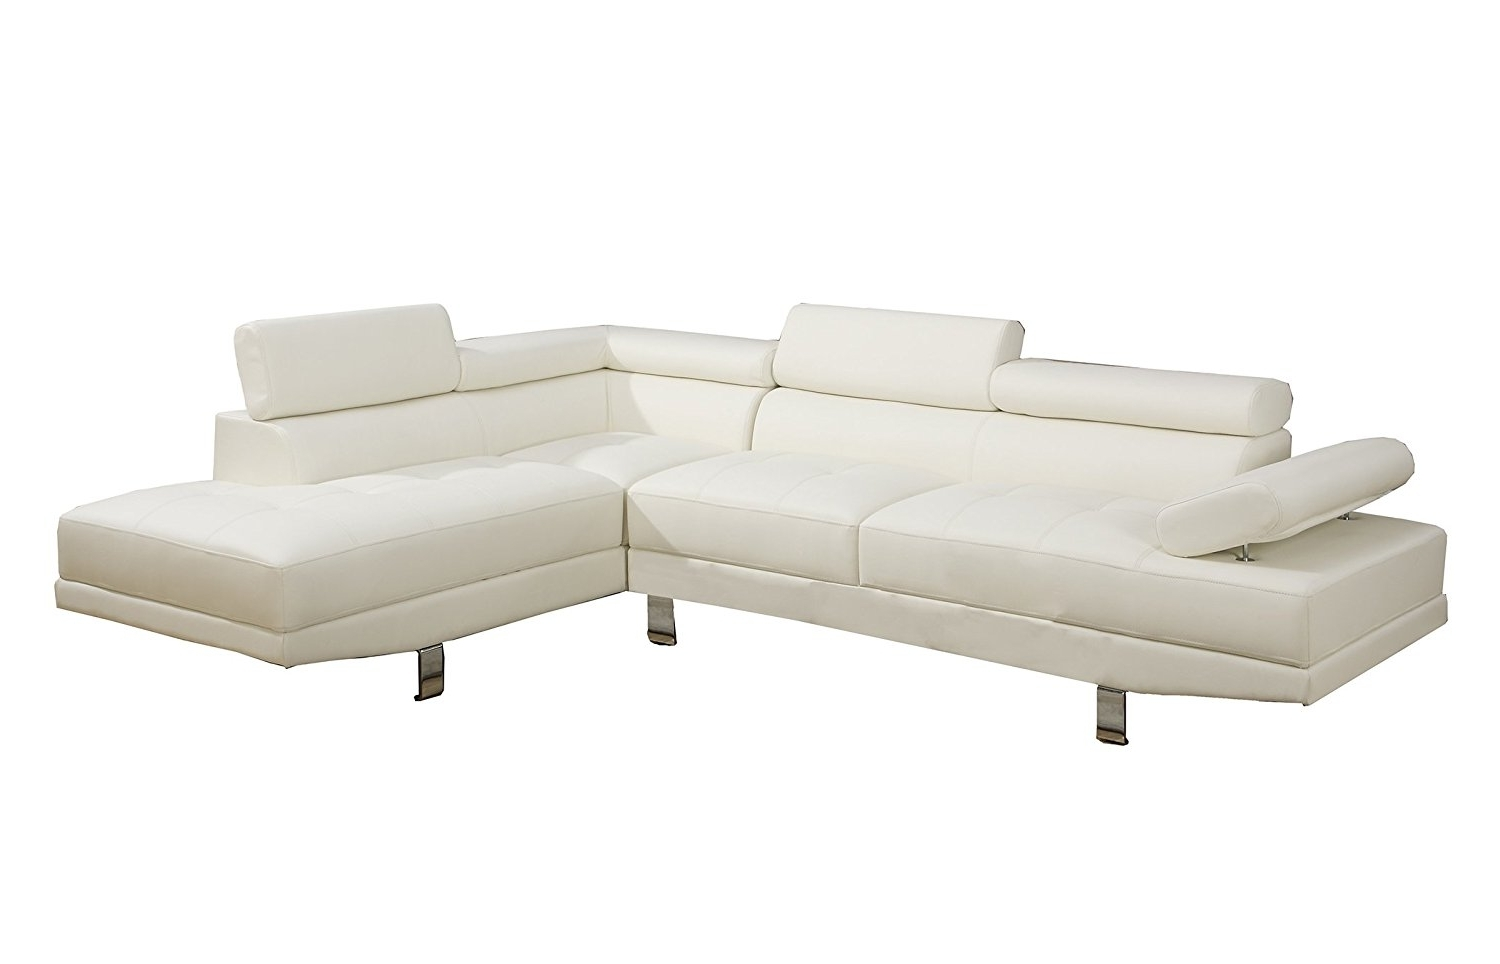 Amazon: Poundex 2 Pieces Faux Leather Sectional Right Chaise Throughout Most Recent Leather Chaise Sofas (View 15 of 15)